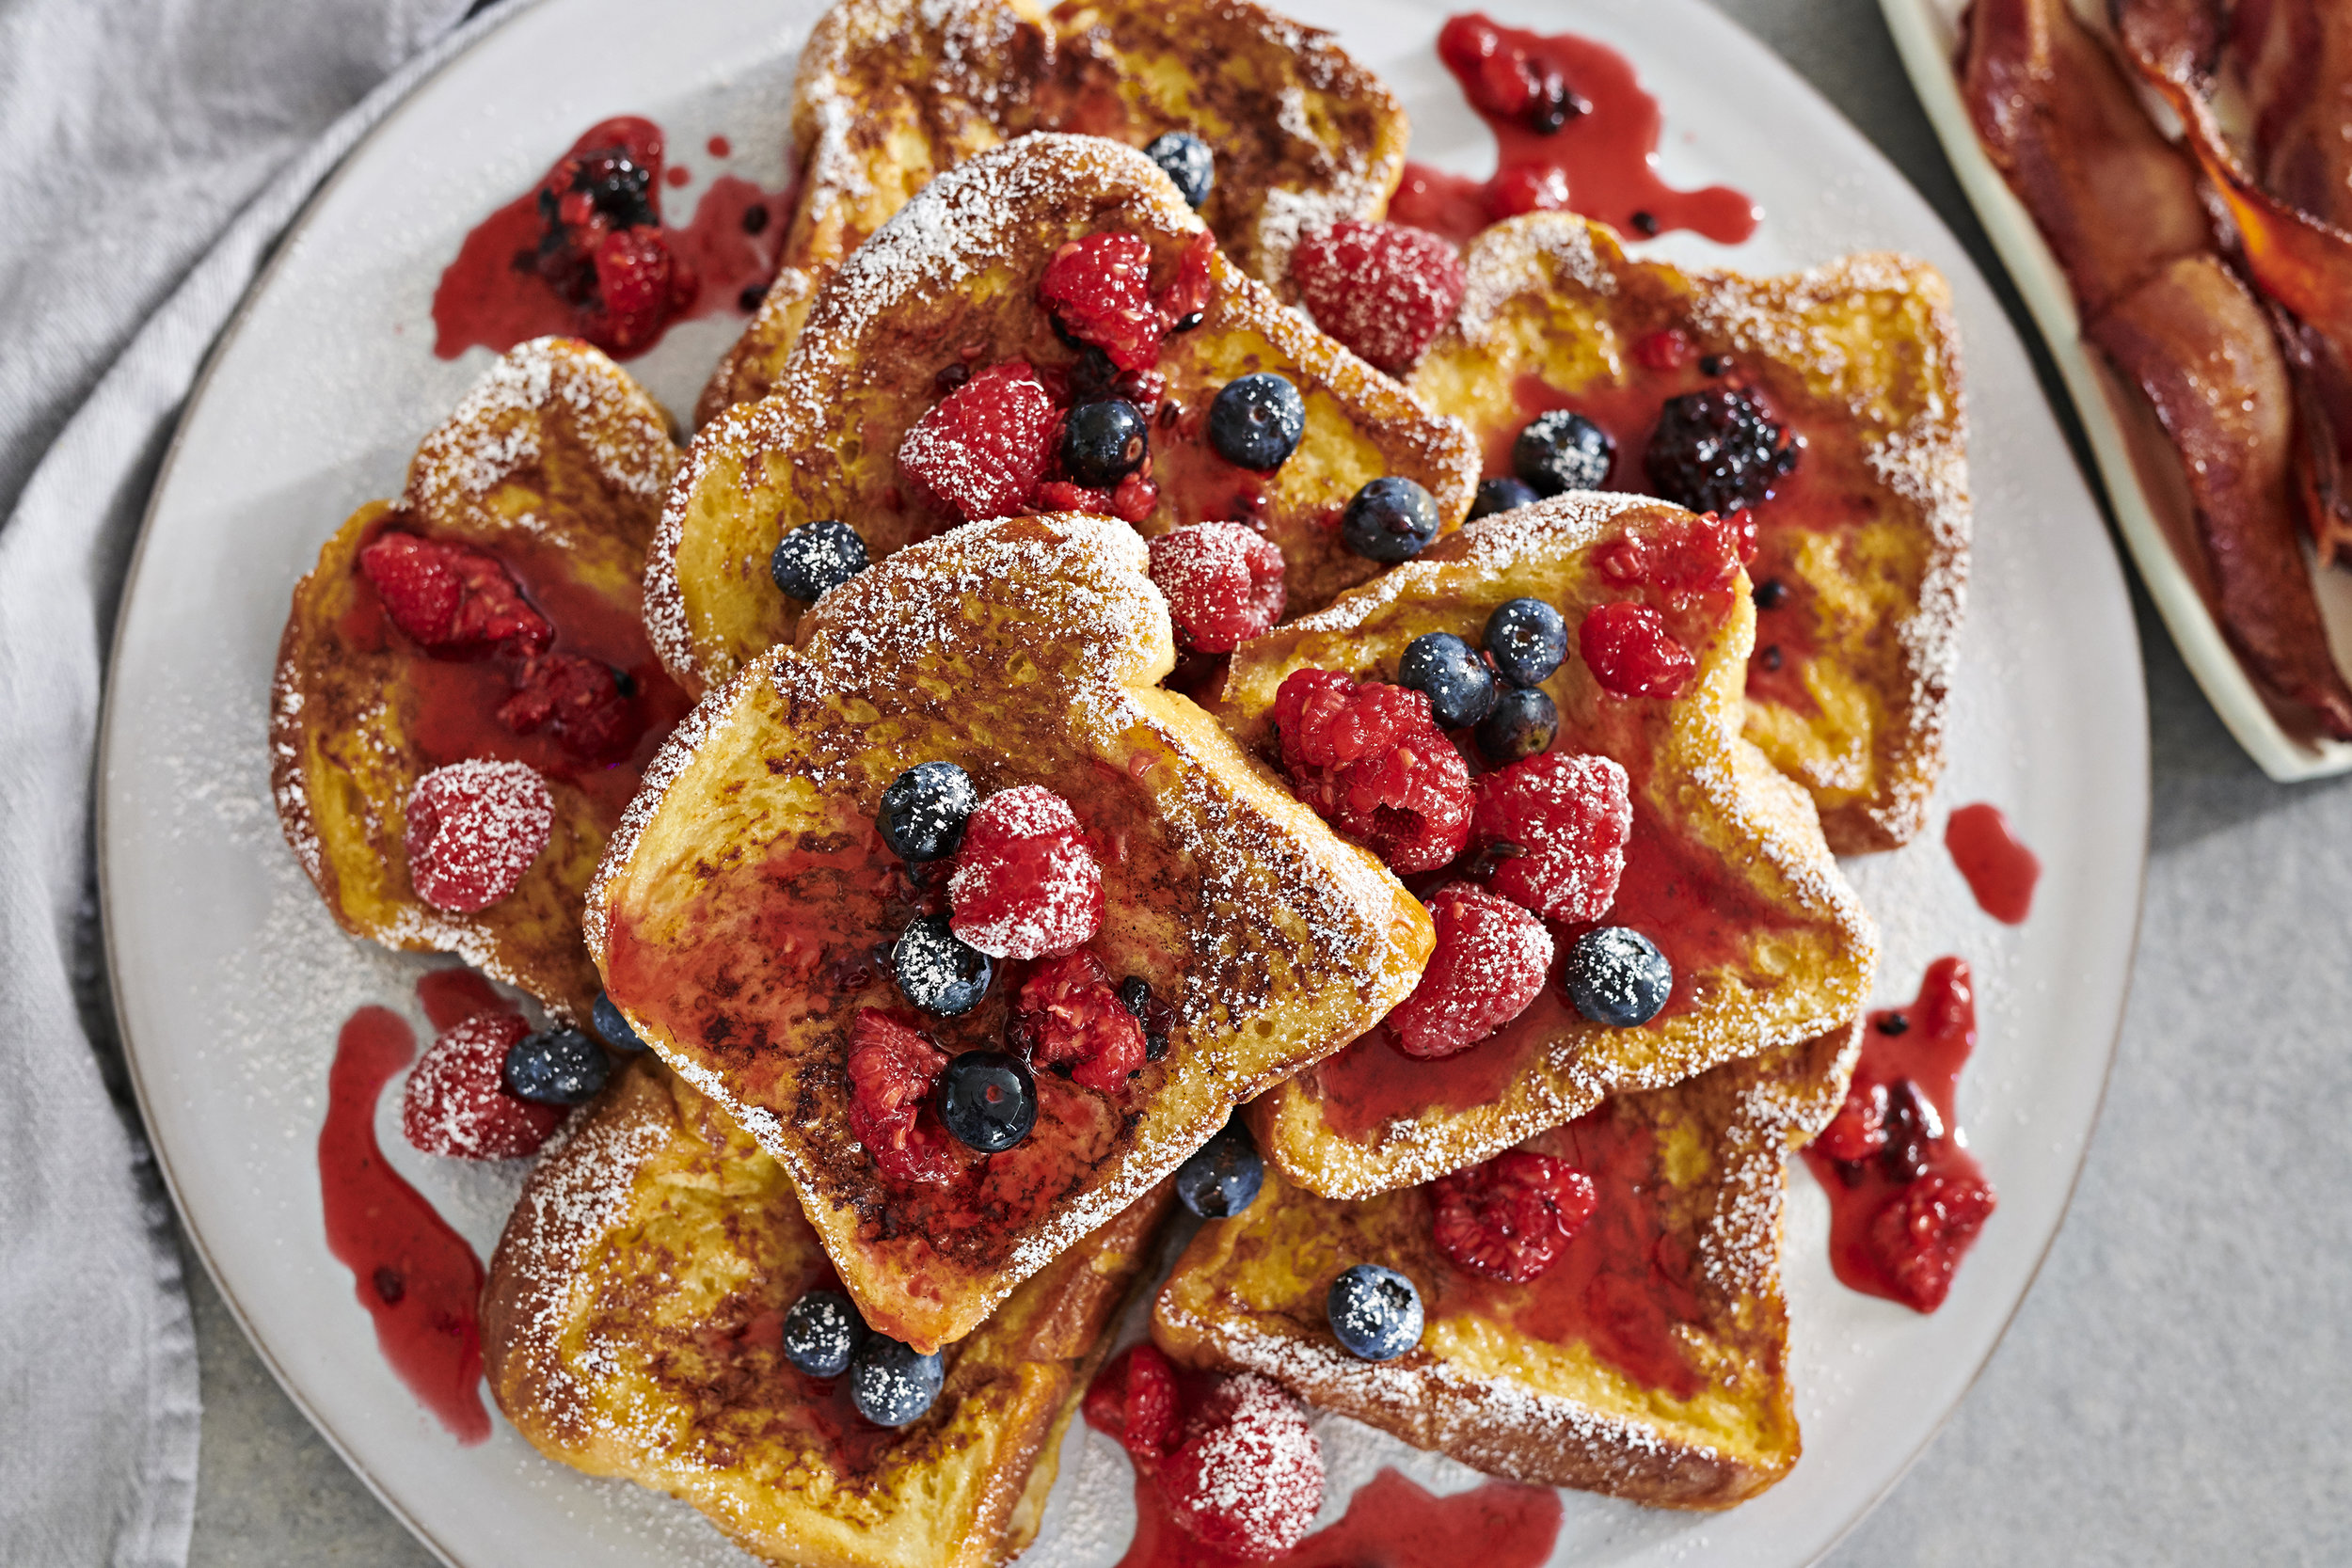 Cinnamon French Toast with Berries and Powdered Sugar